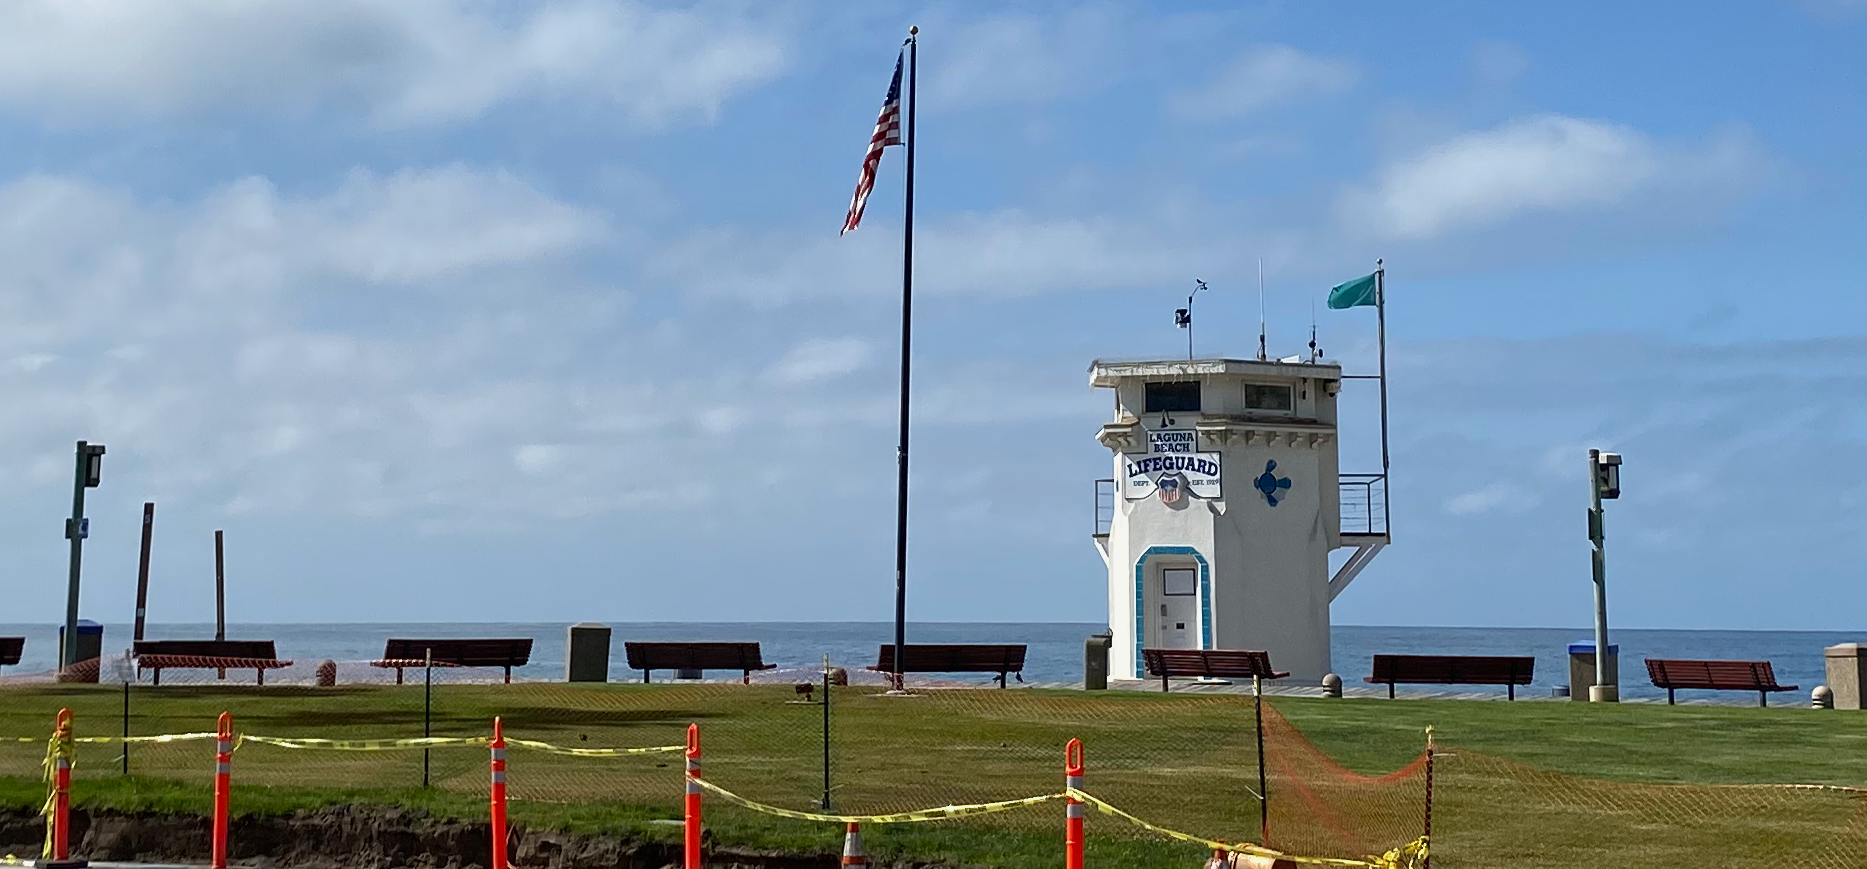 A cordoned off Main beach in Laguna Beach CA. Iconic lighthouse, American flag, empty benches, and caution tape.